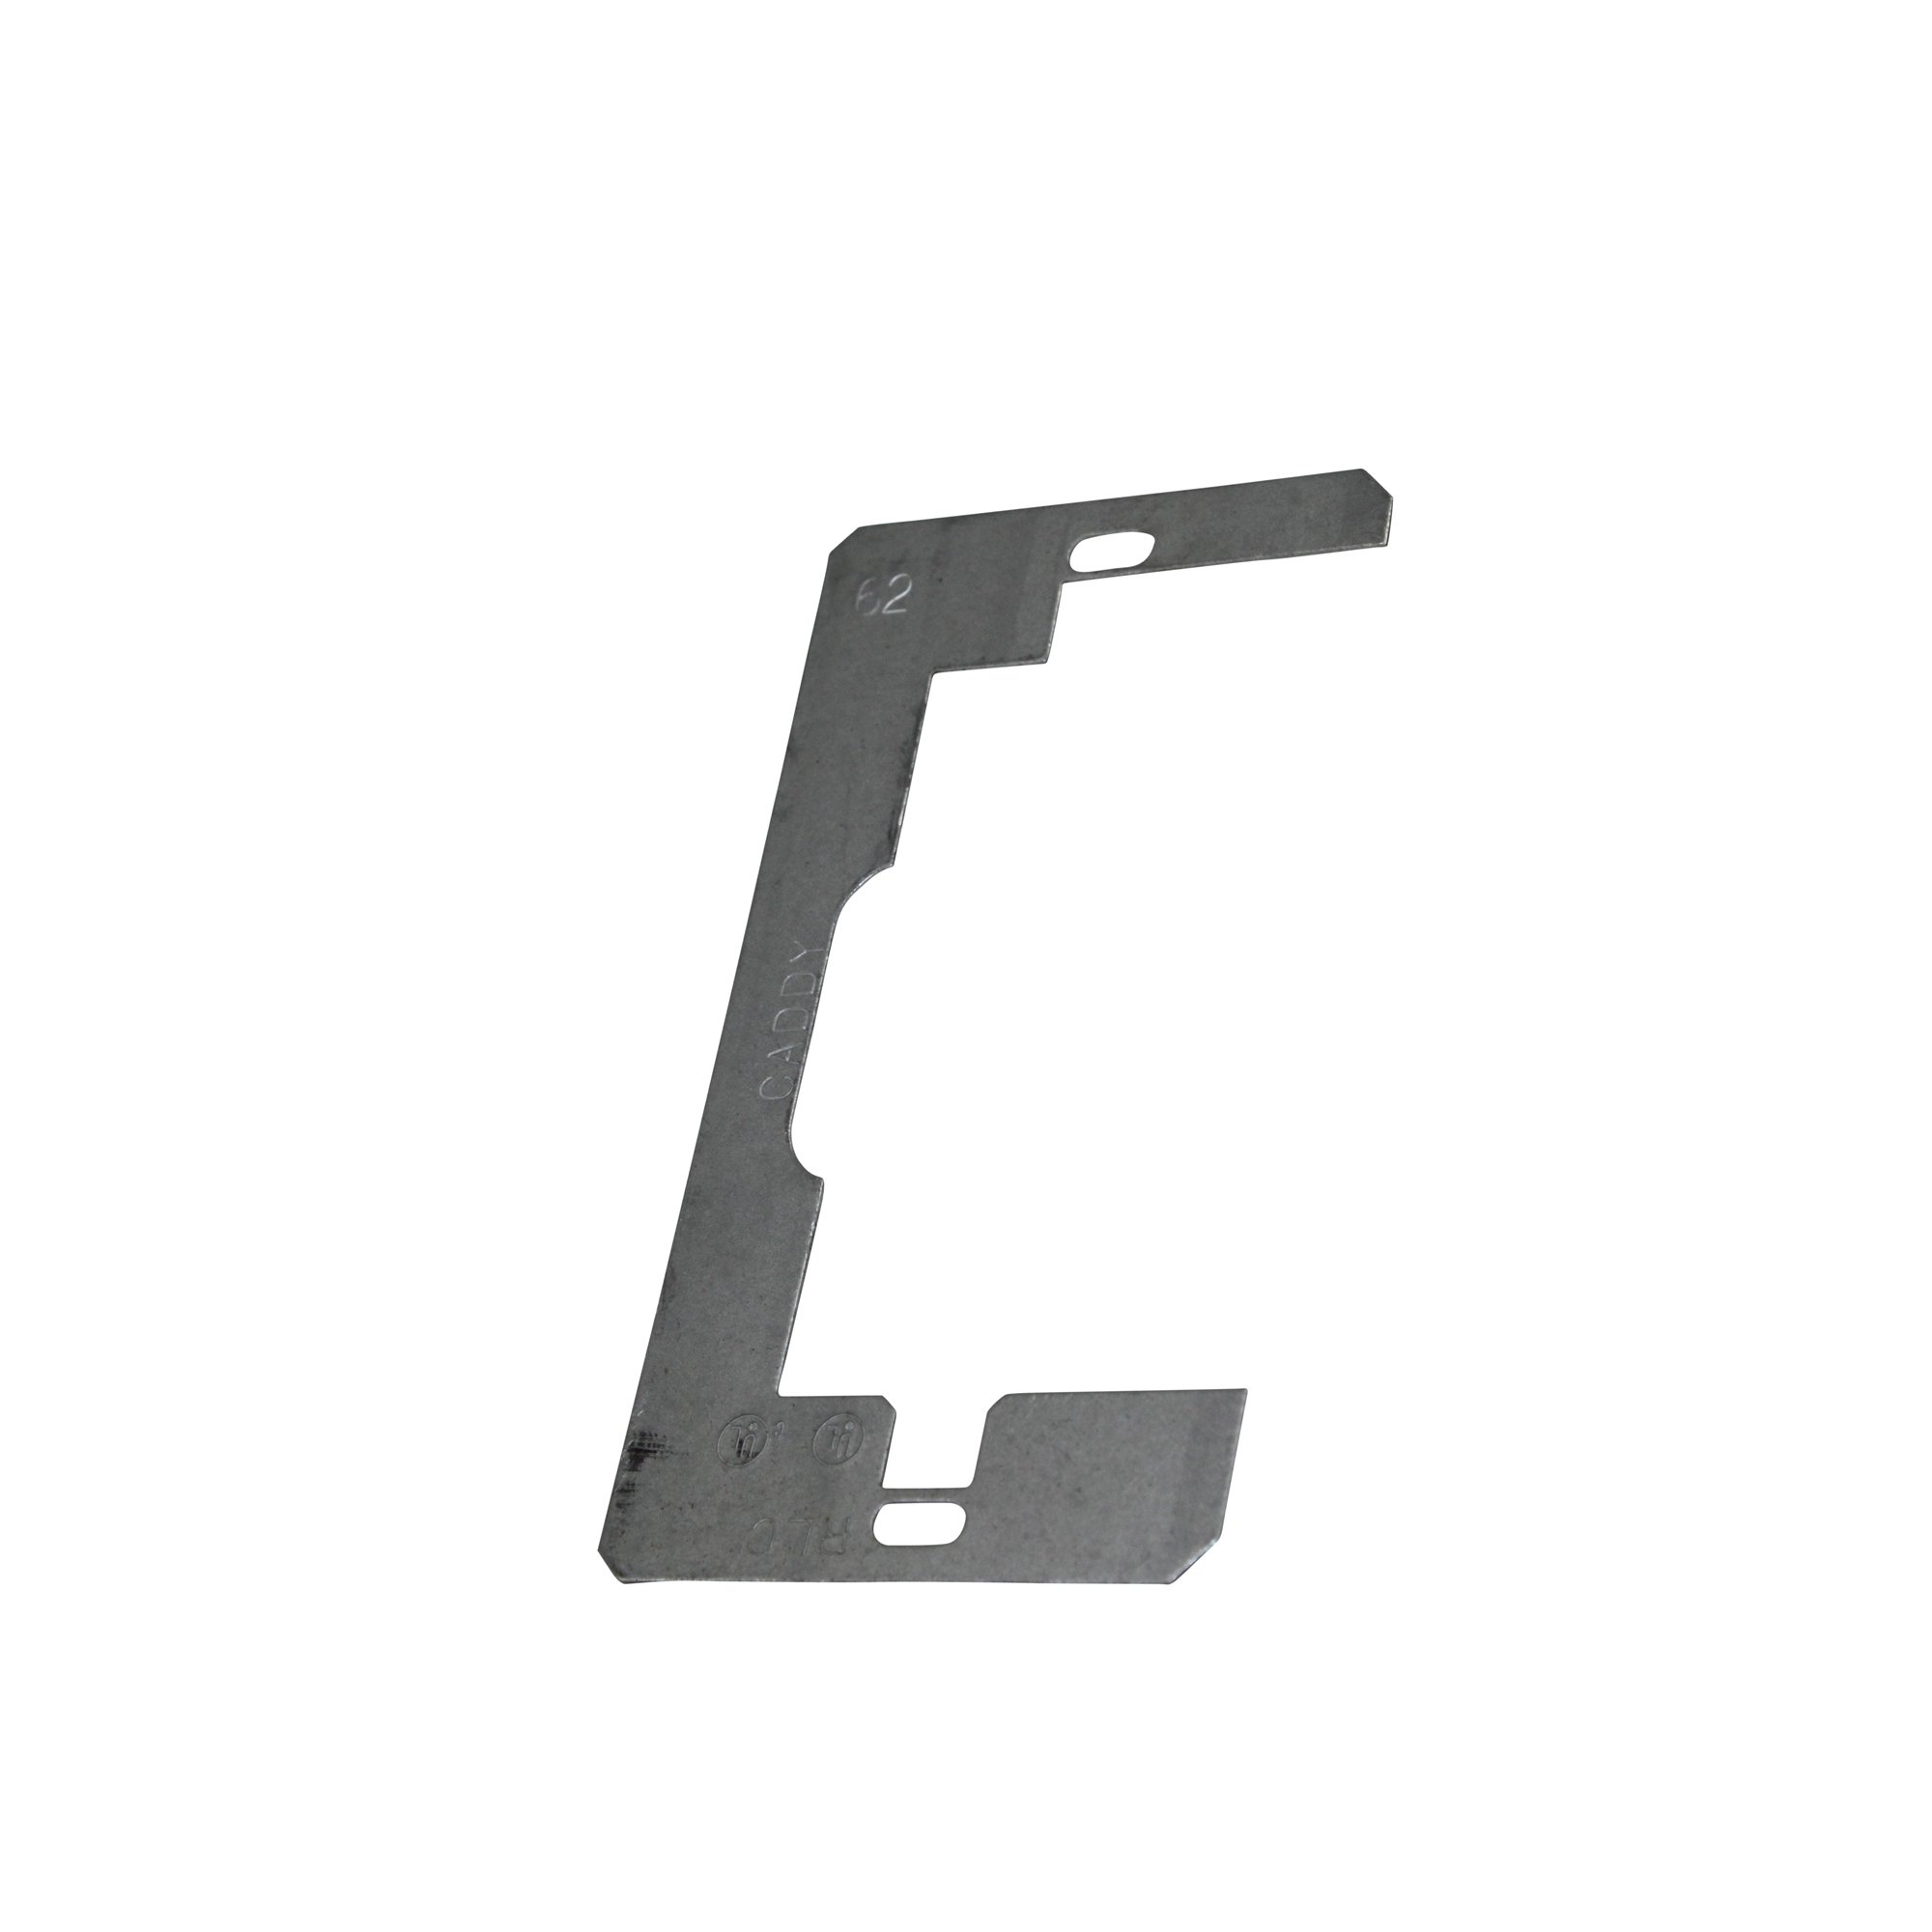 Erico Caddy Rlc Fixit Clip Device Leveler & Retainer Wiring Device Retainer, Silver (Pack Of 100)